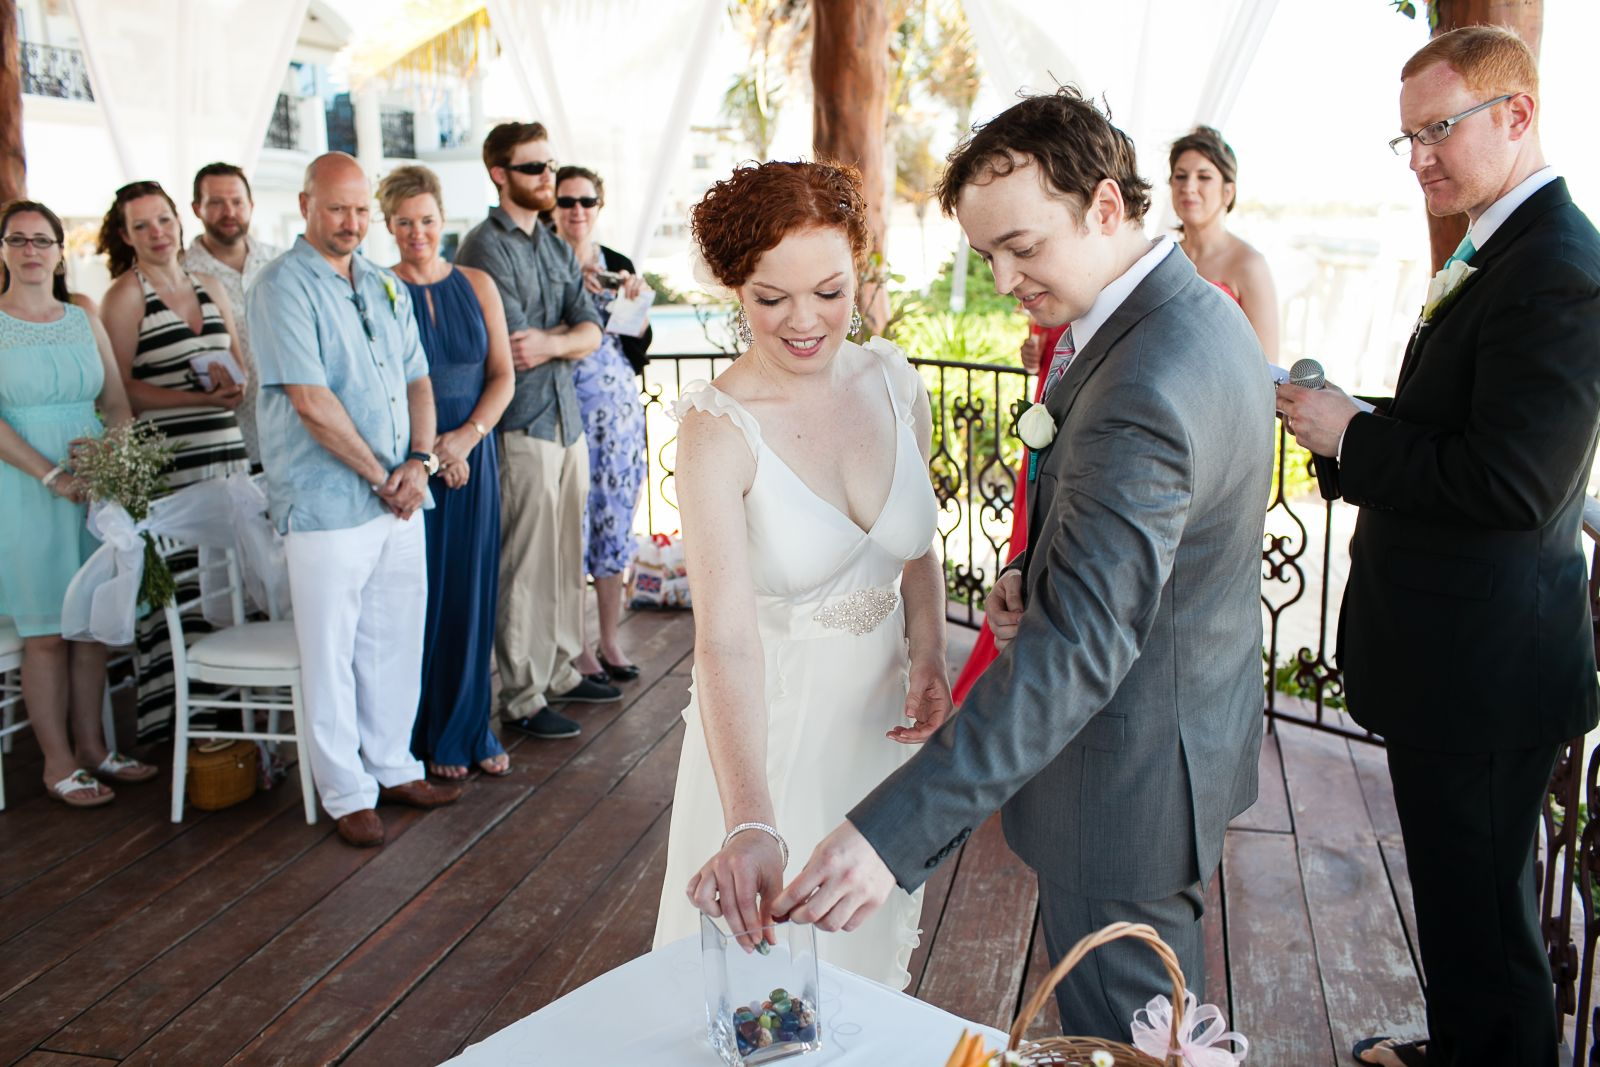 """We had a simple 20-minute ceremony. In lieu of a sand ceremony we opted for a """"stone ceremony"""". We brought glass stones with us and had them in a basket, each guest took one when getting seated for the wedding. Then, during the wedding we invited each of"""